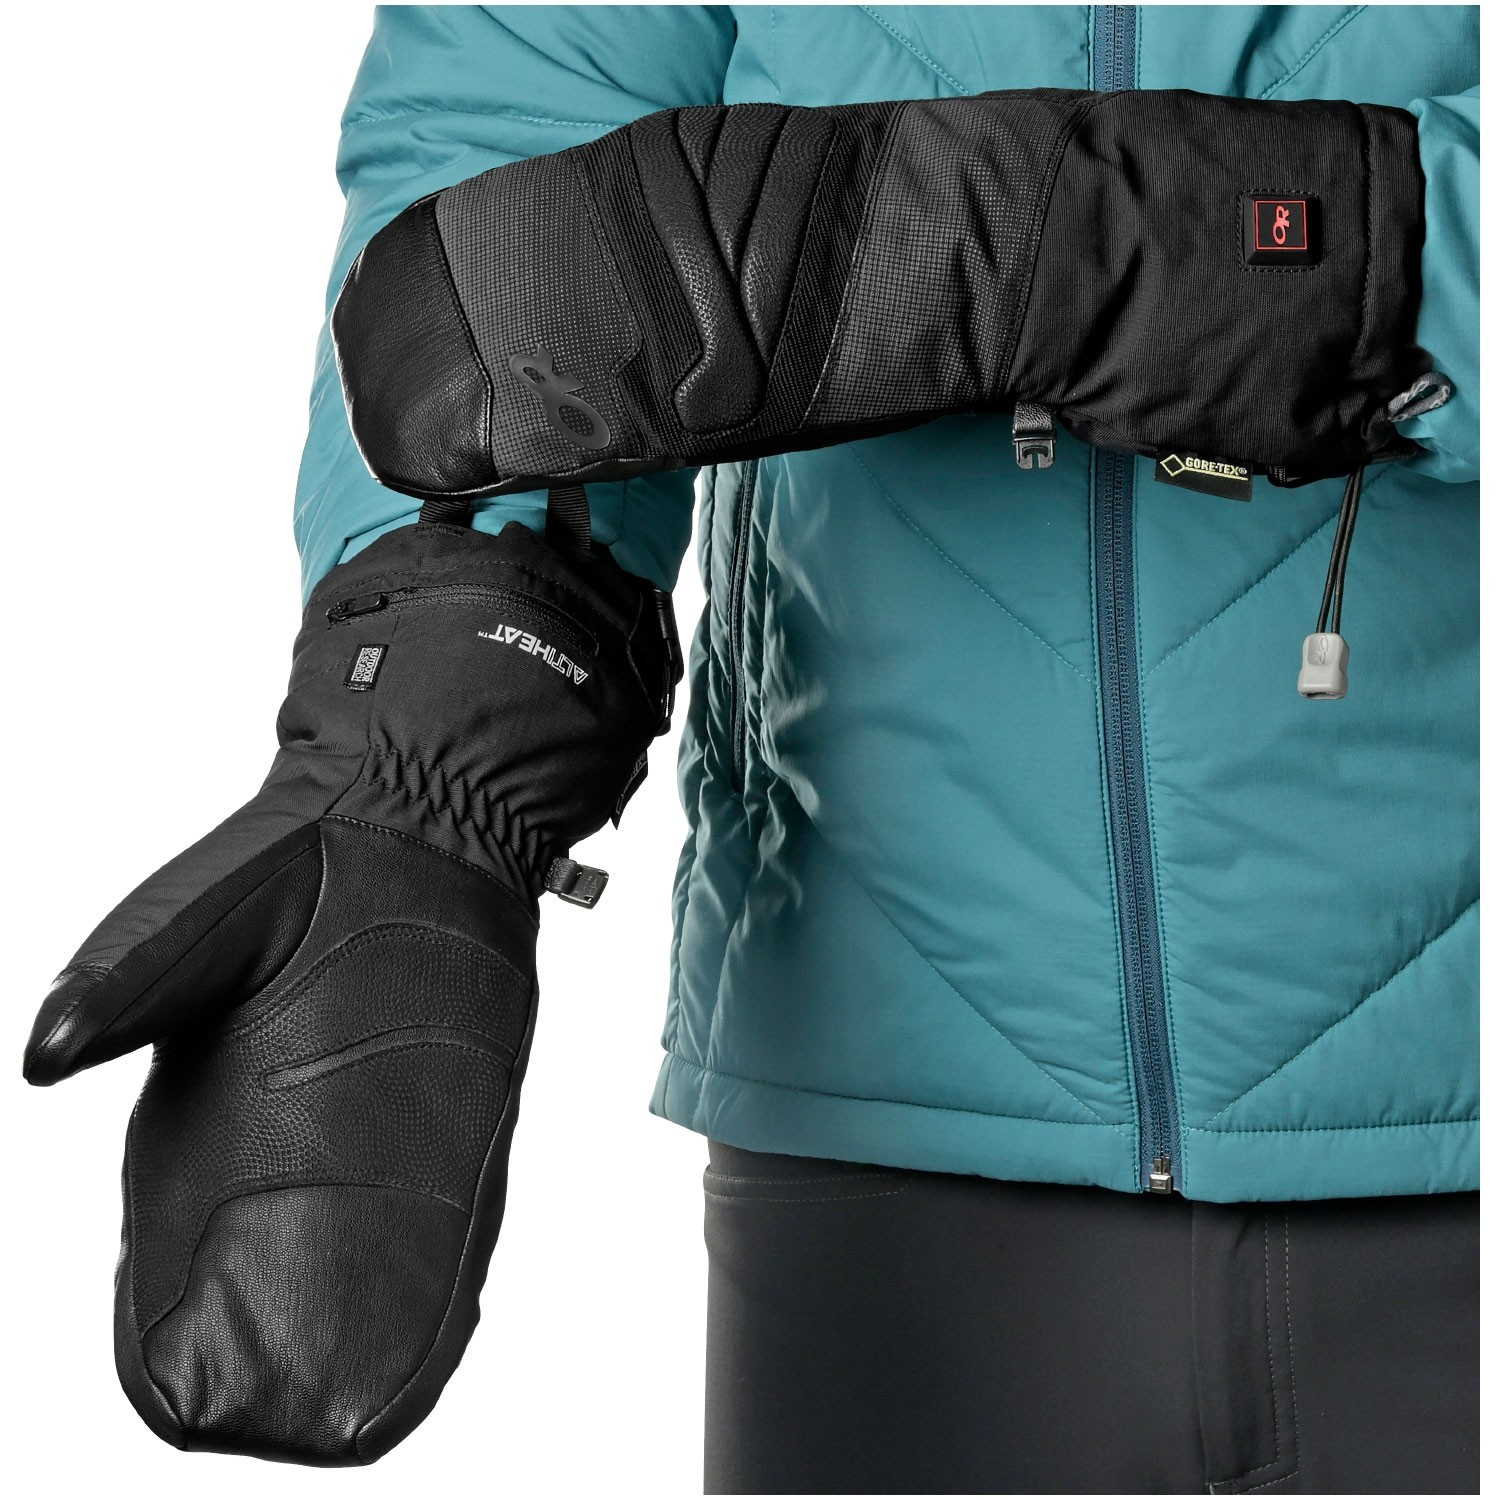 OUTDOOR RESEARCH - Lucent Heated Mitts - Black